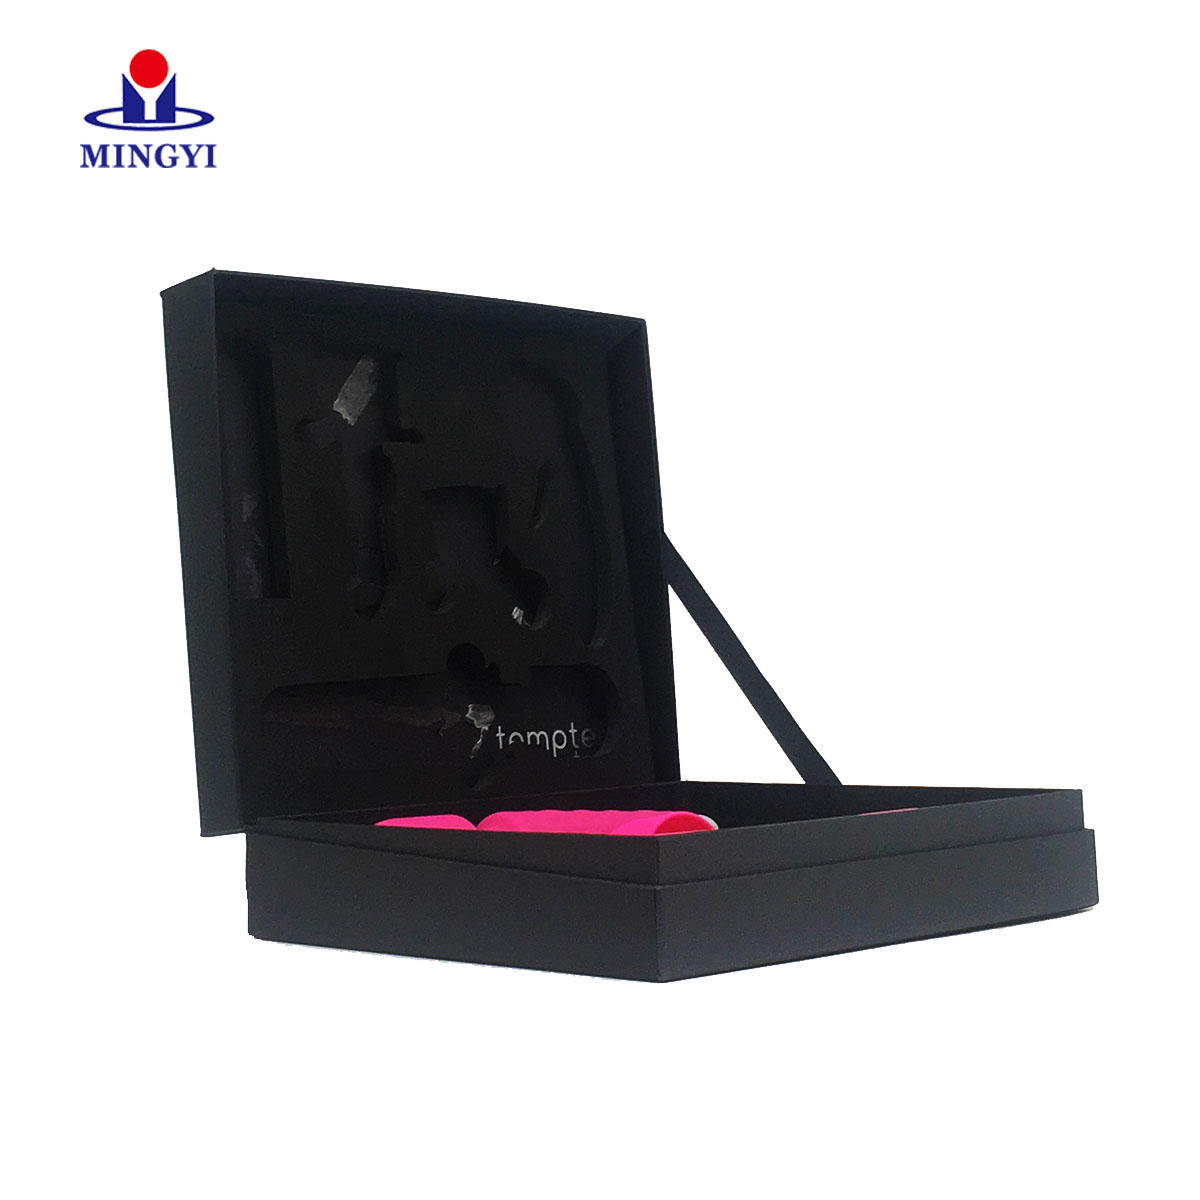 Customized sex toy cardboard packaging box with calmshell structure